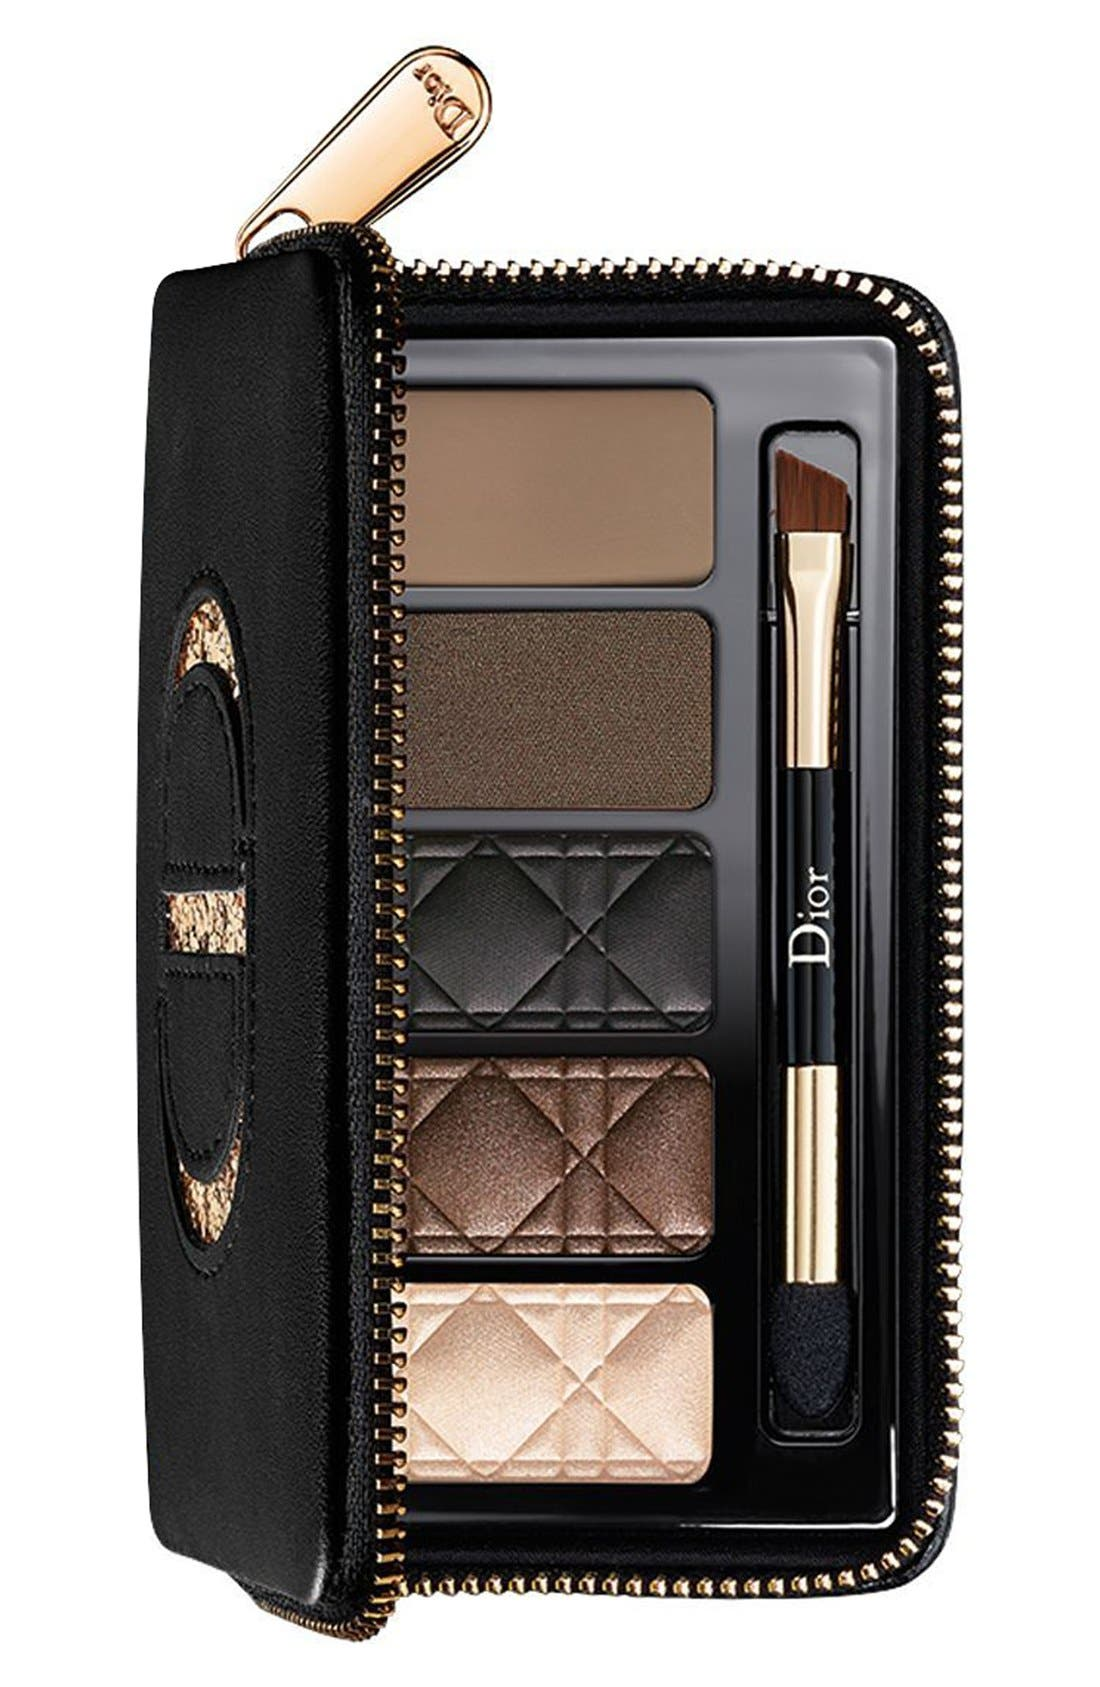 Total Matte Smoky Glow Palette for Eyes & Brows,                             Main thumbnail 1, color,                             200